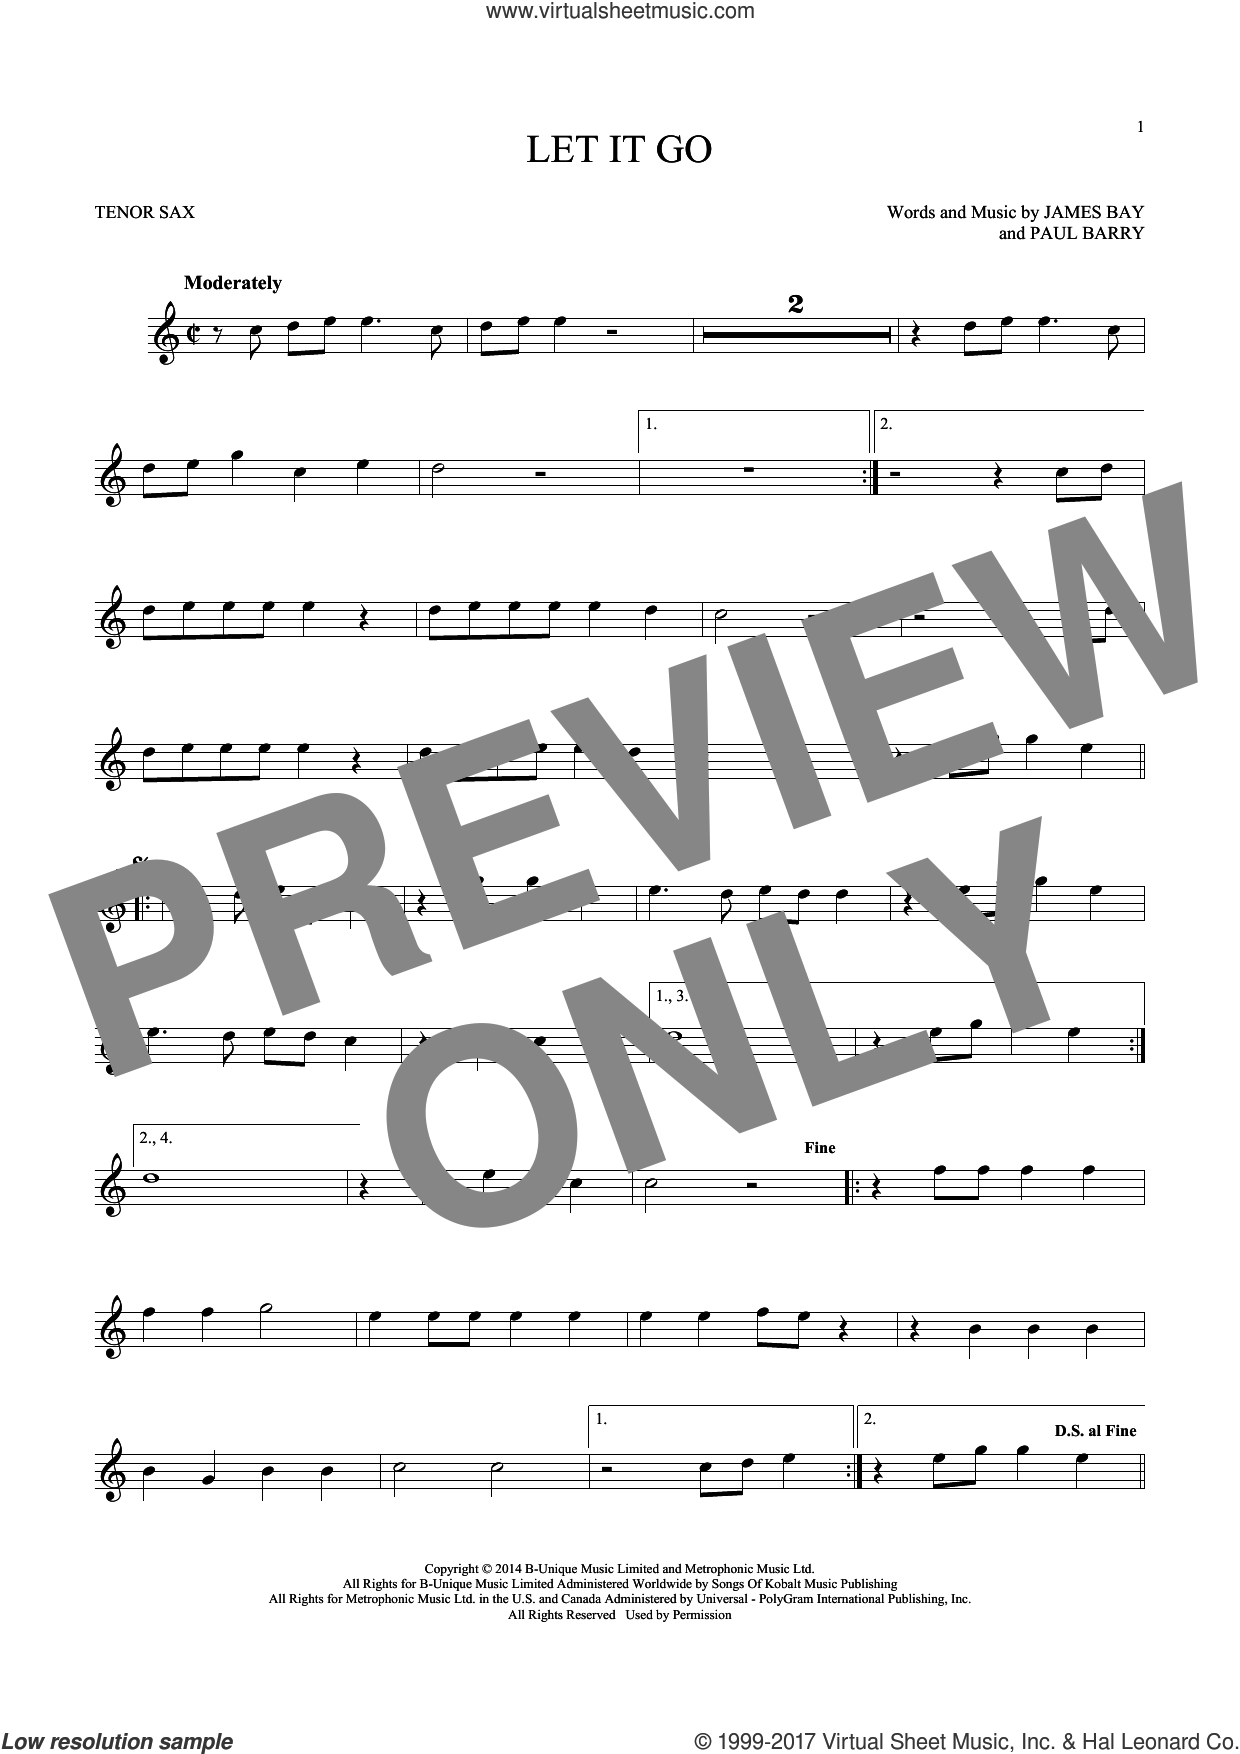 Let It Go sheet music for tenor saxophone solo by James Bay and Paul Barry, intermediate skill level